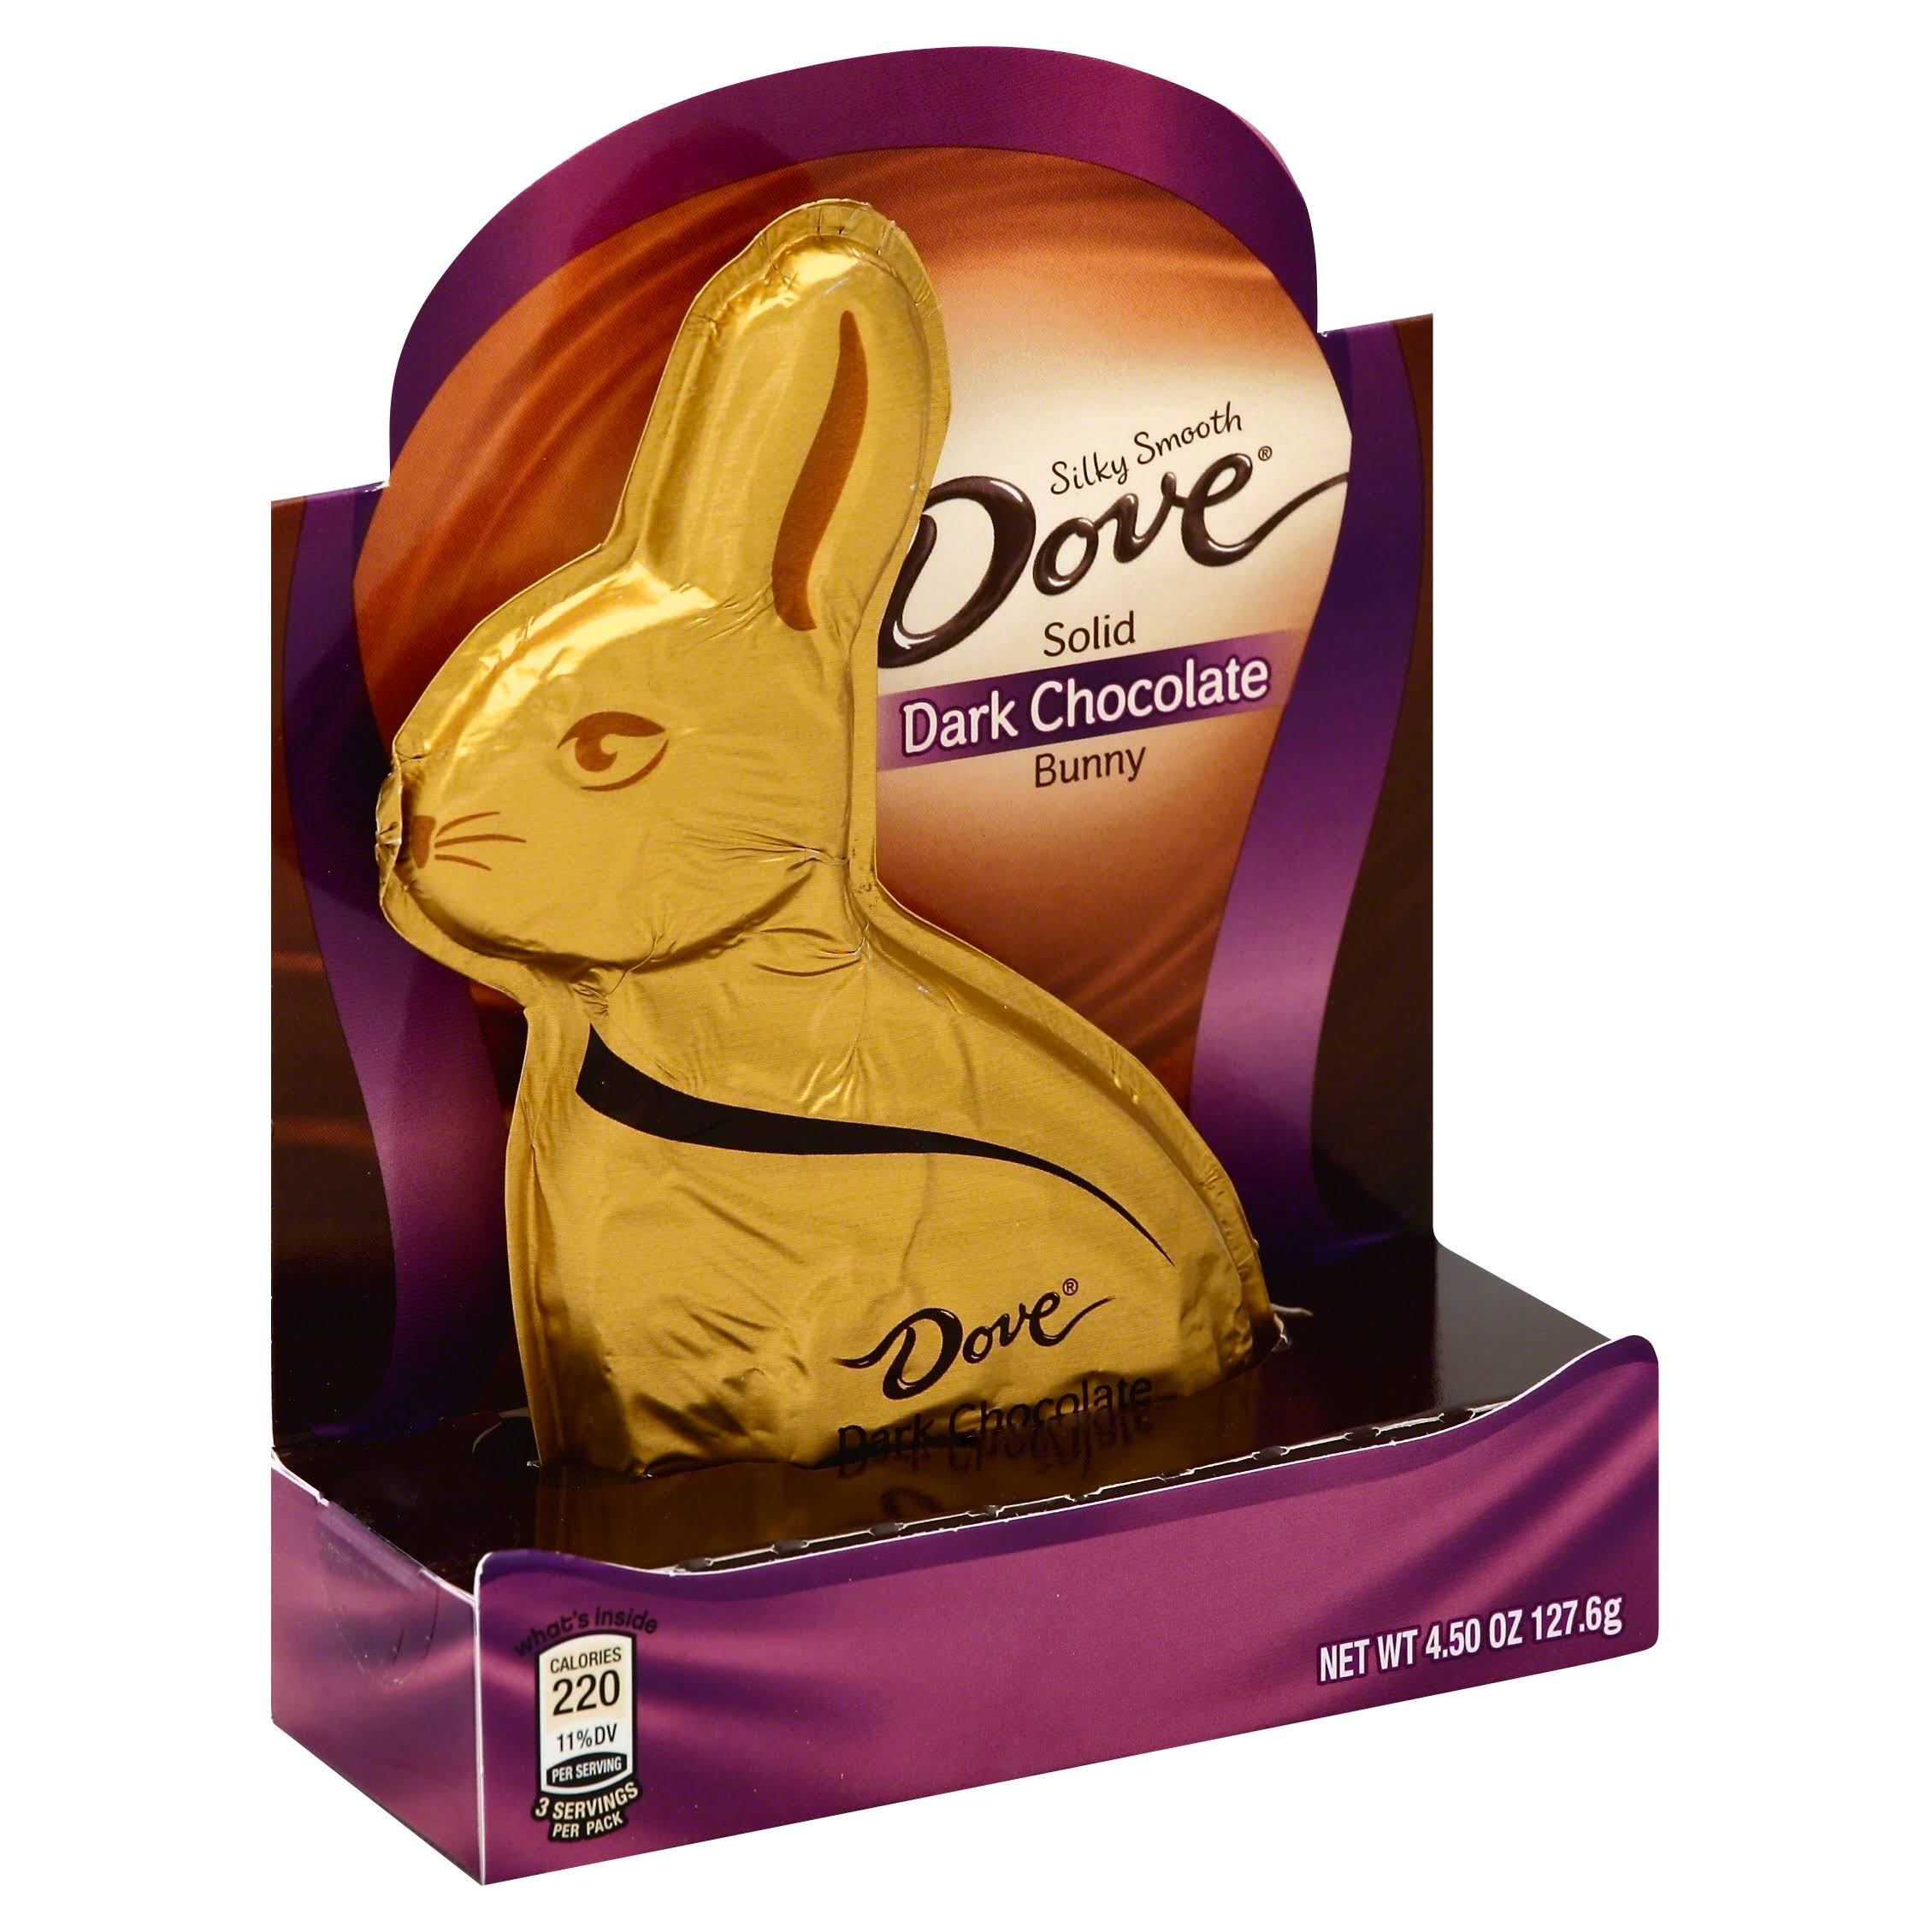 Dove Chocolate Dove Solid Dark Chocolate Bunny - 4.5 Oz